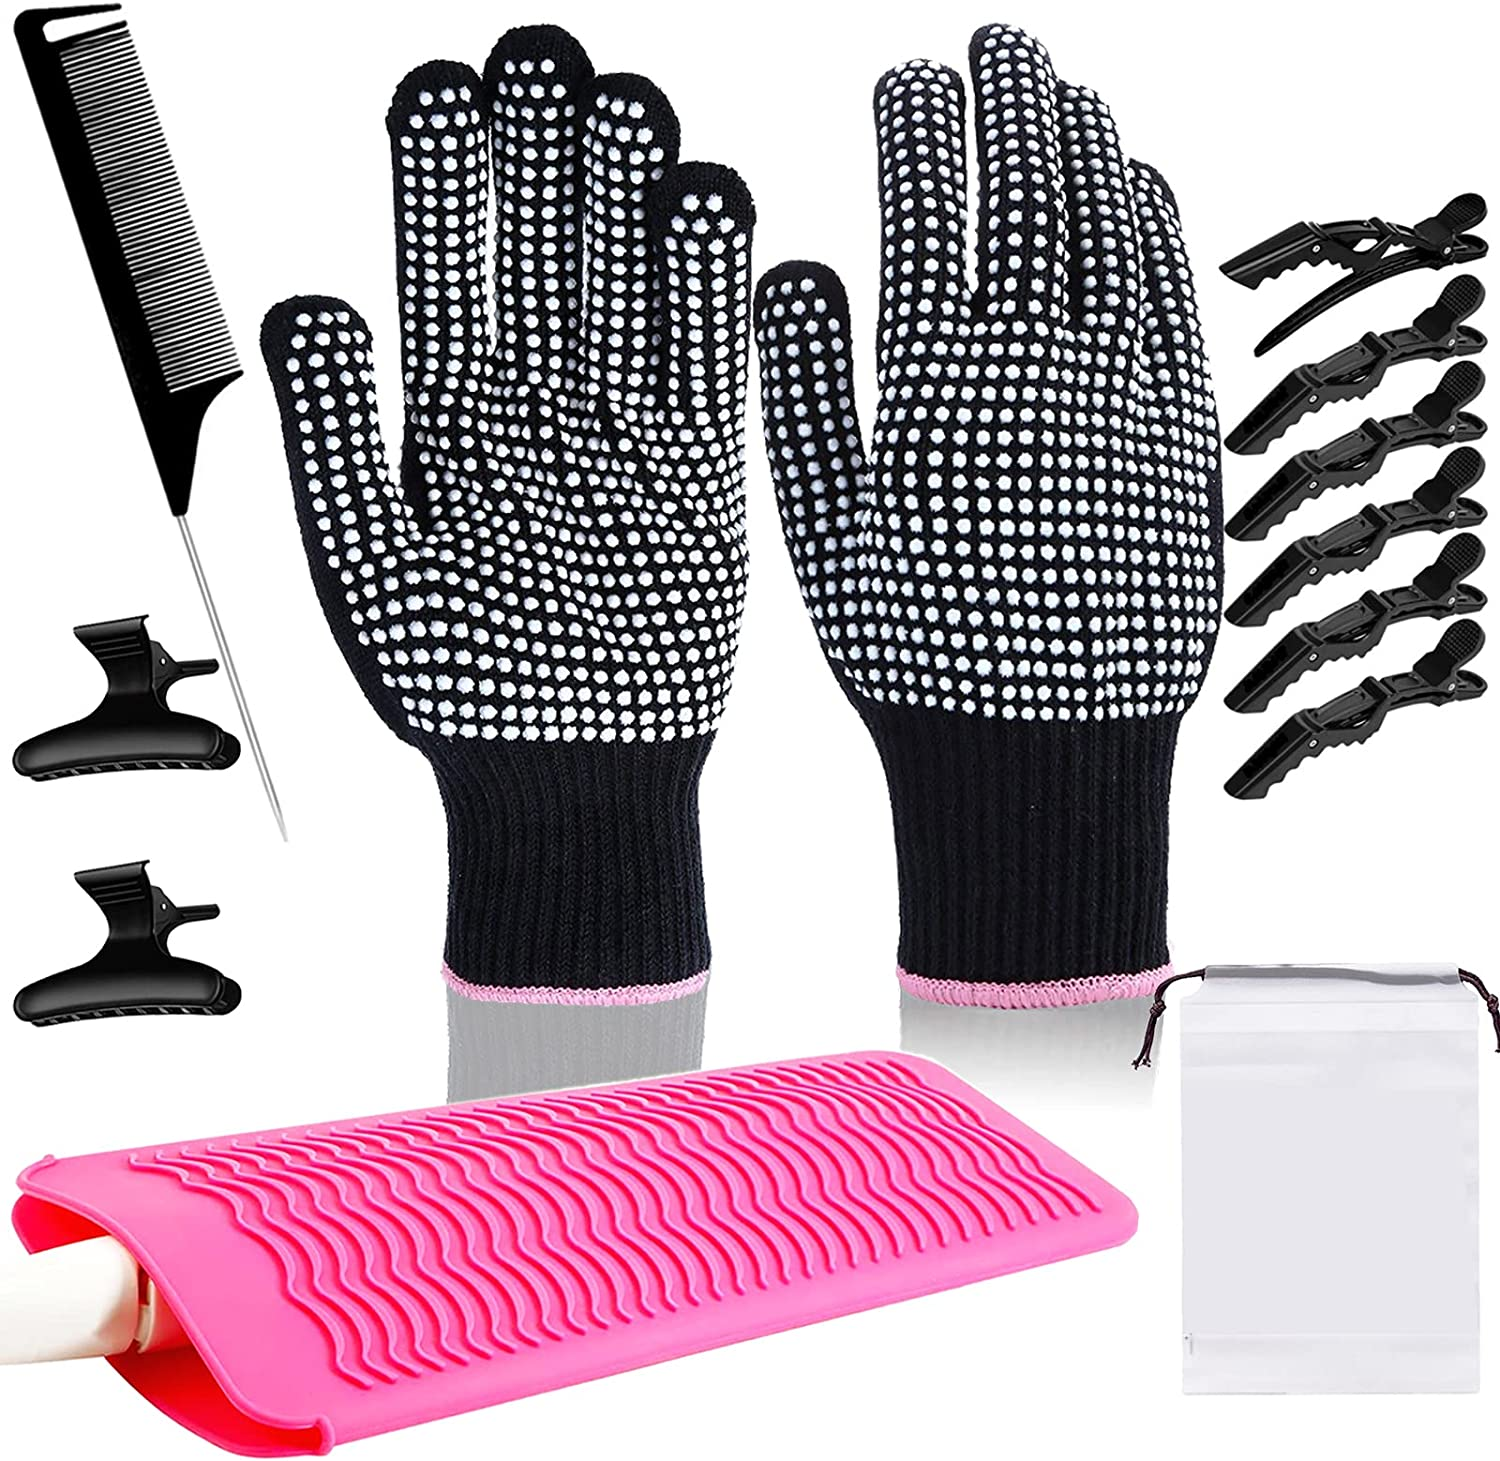 2 Pcs Heat Resistant Gloves for Hair Styling, Travel Silicone Mat Pouch for Curling Iron,Flat Iron,Hair Straightener,Hair Curling Wands, with Styling Hair Clips and Hair Comb for Home and Hair Salon